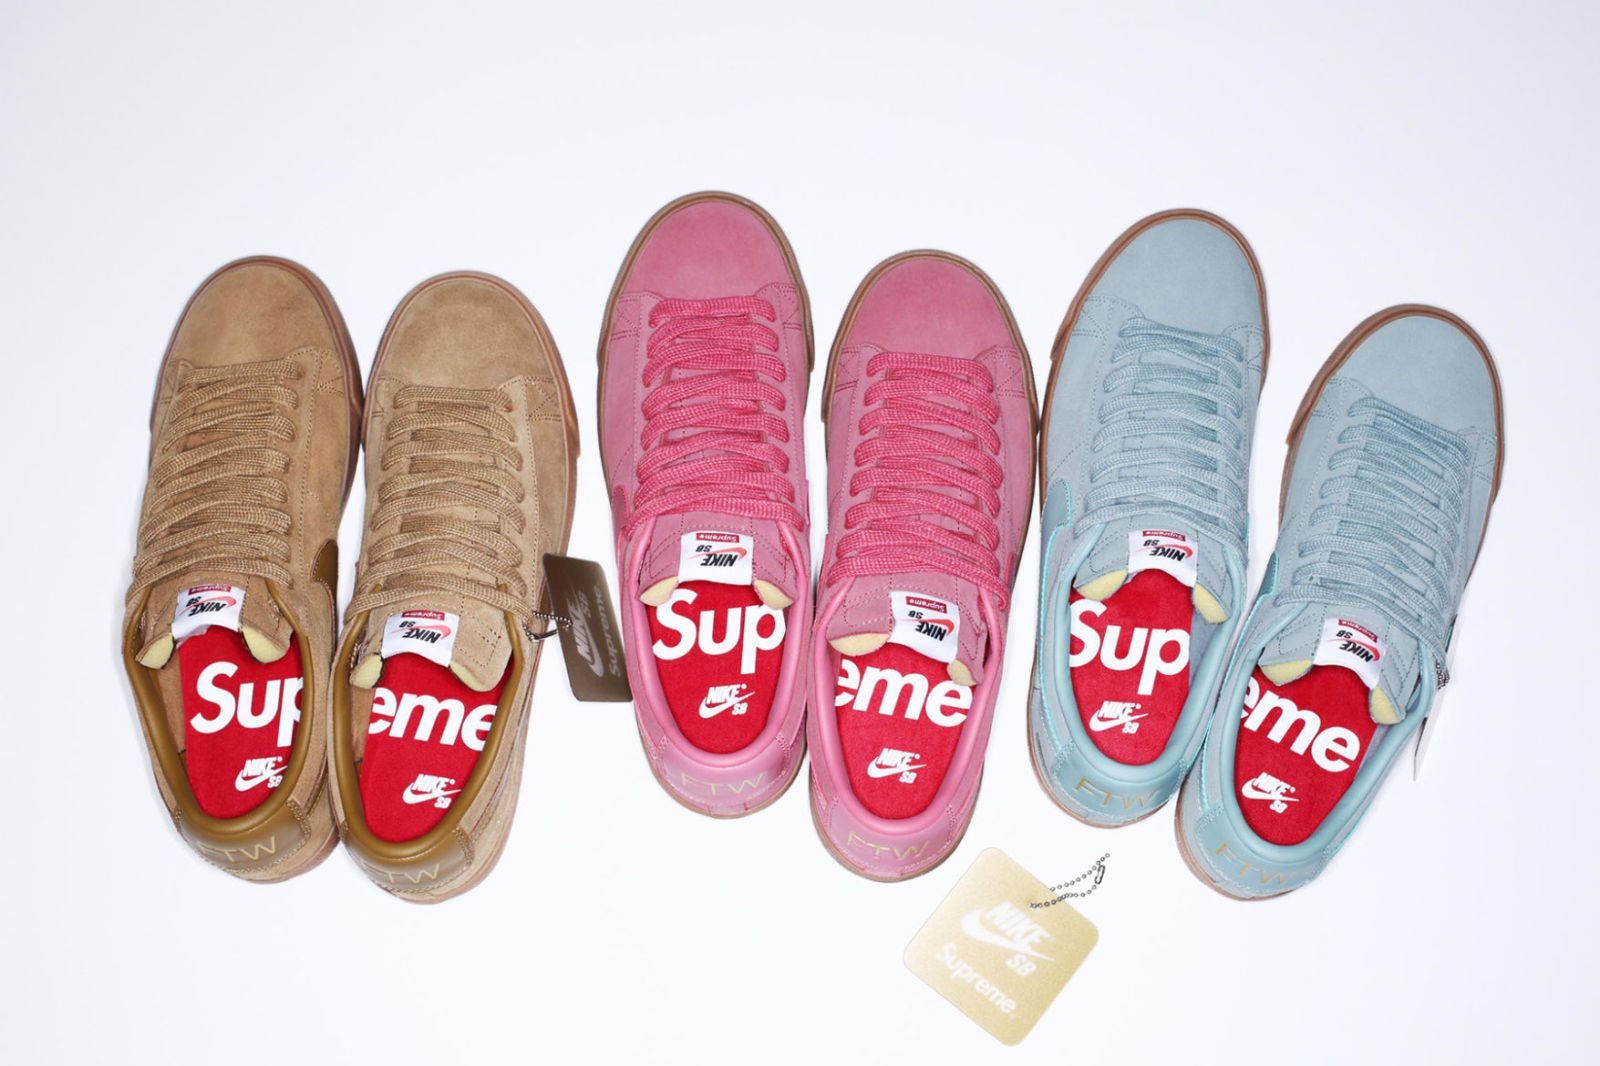 The Supreme x Nike SB collection dropped at 11am today both in store and  online.